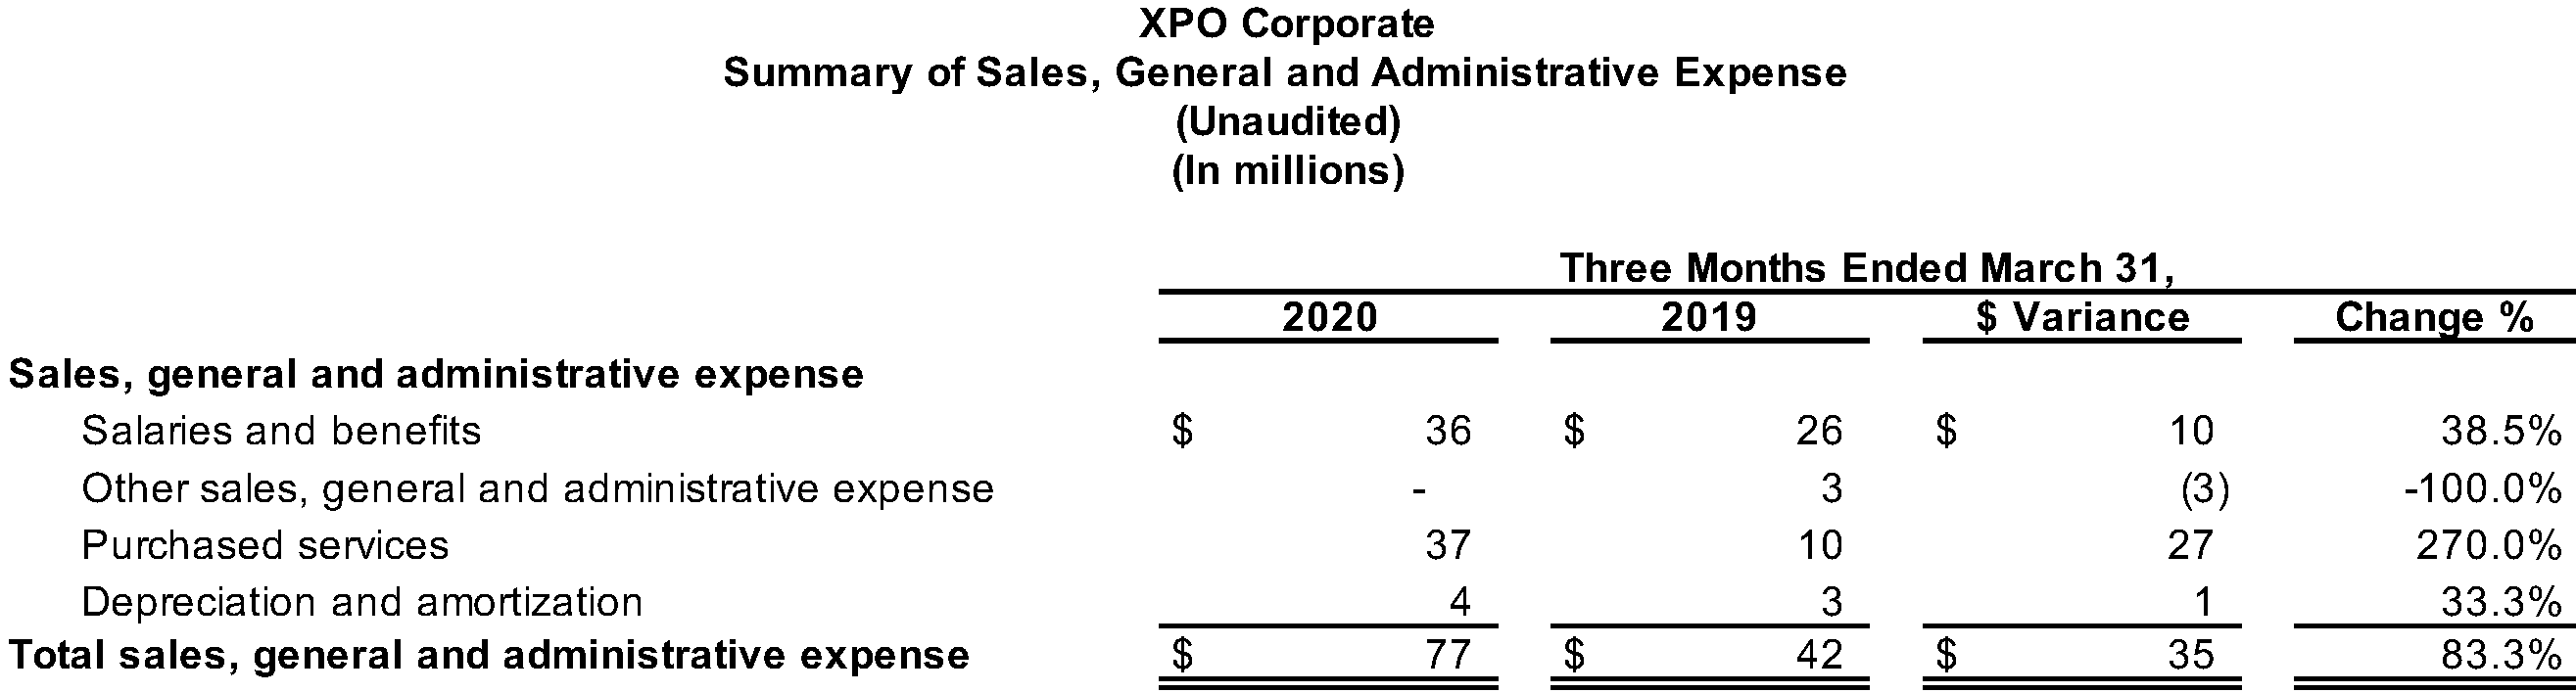 XPO Corporate Summary of Sales, General and Administrative Expense